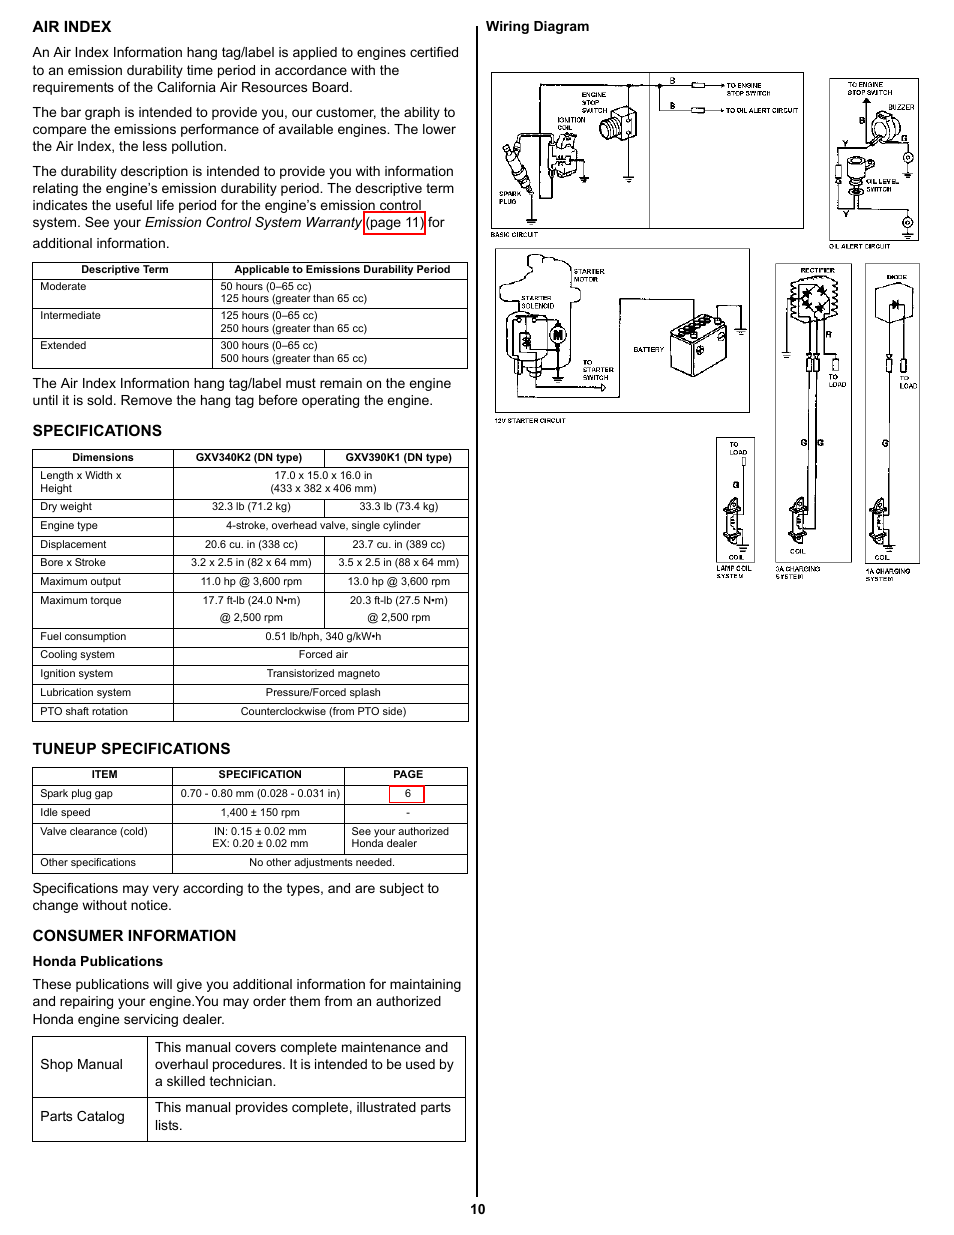 Air index, Specifications, Tuneup specifications | HONDA GXV390 User Manual  | Page 10 / 16Manuals Directory